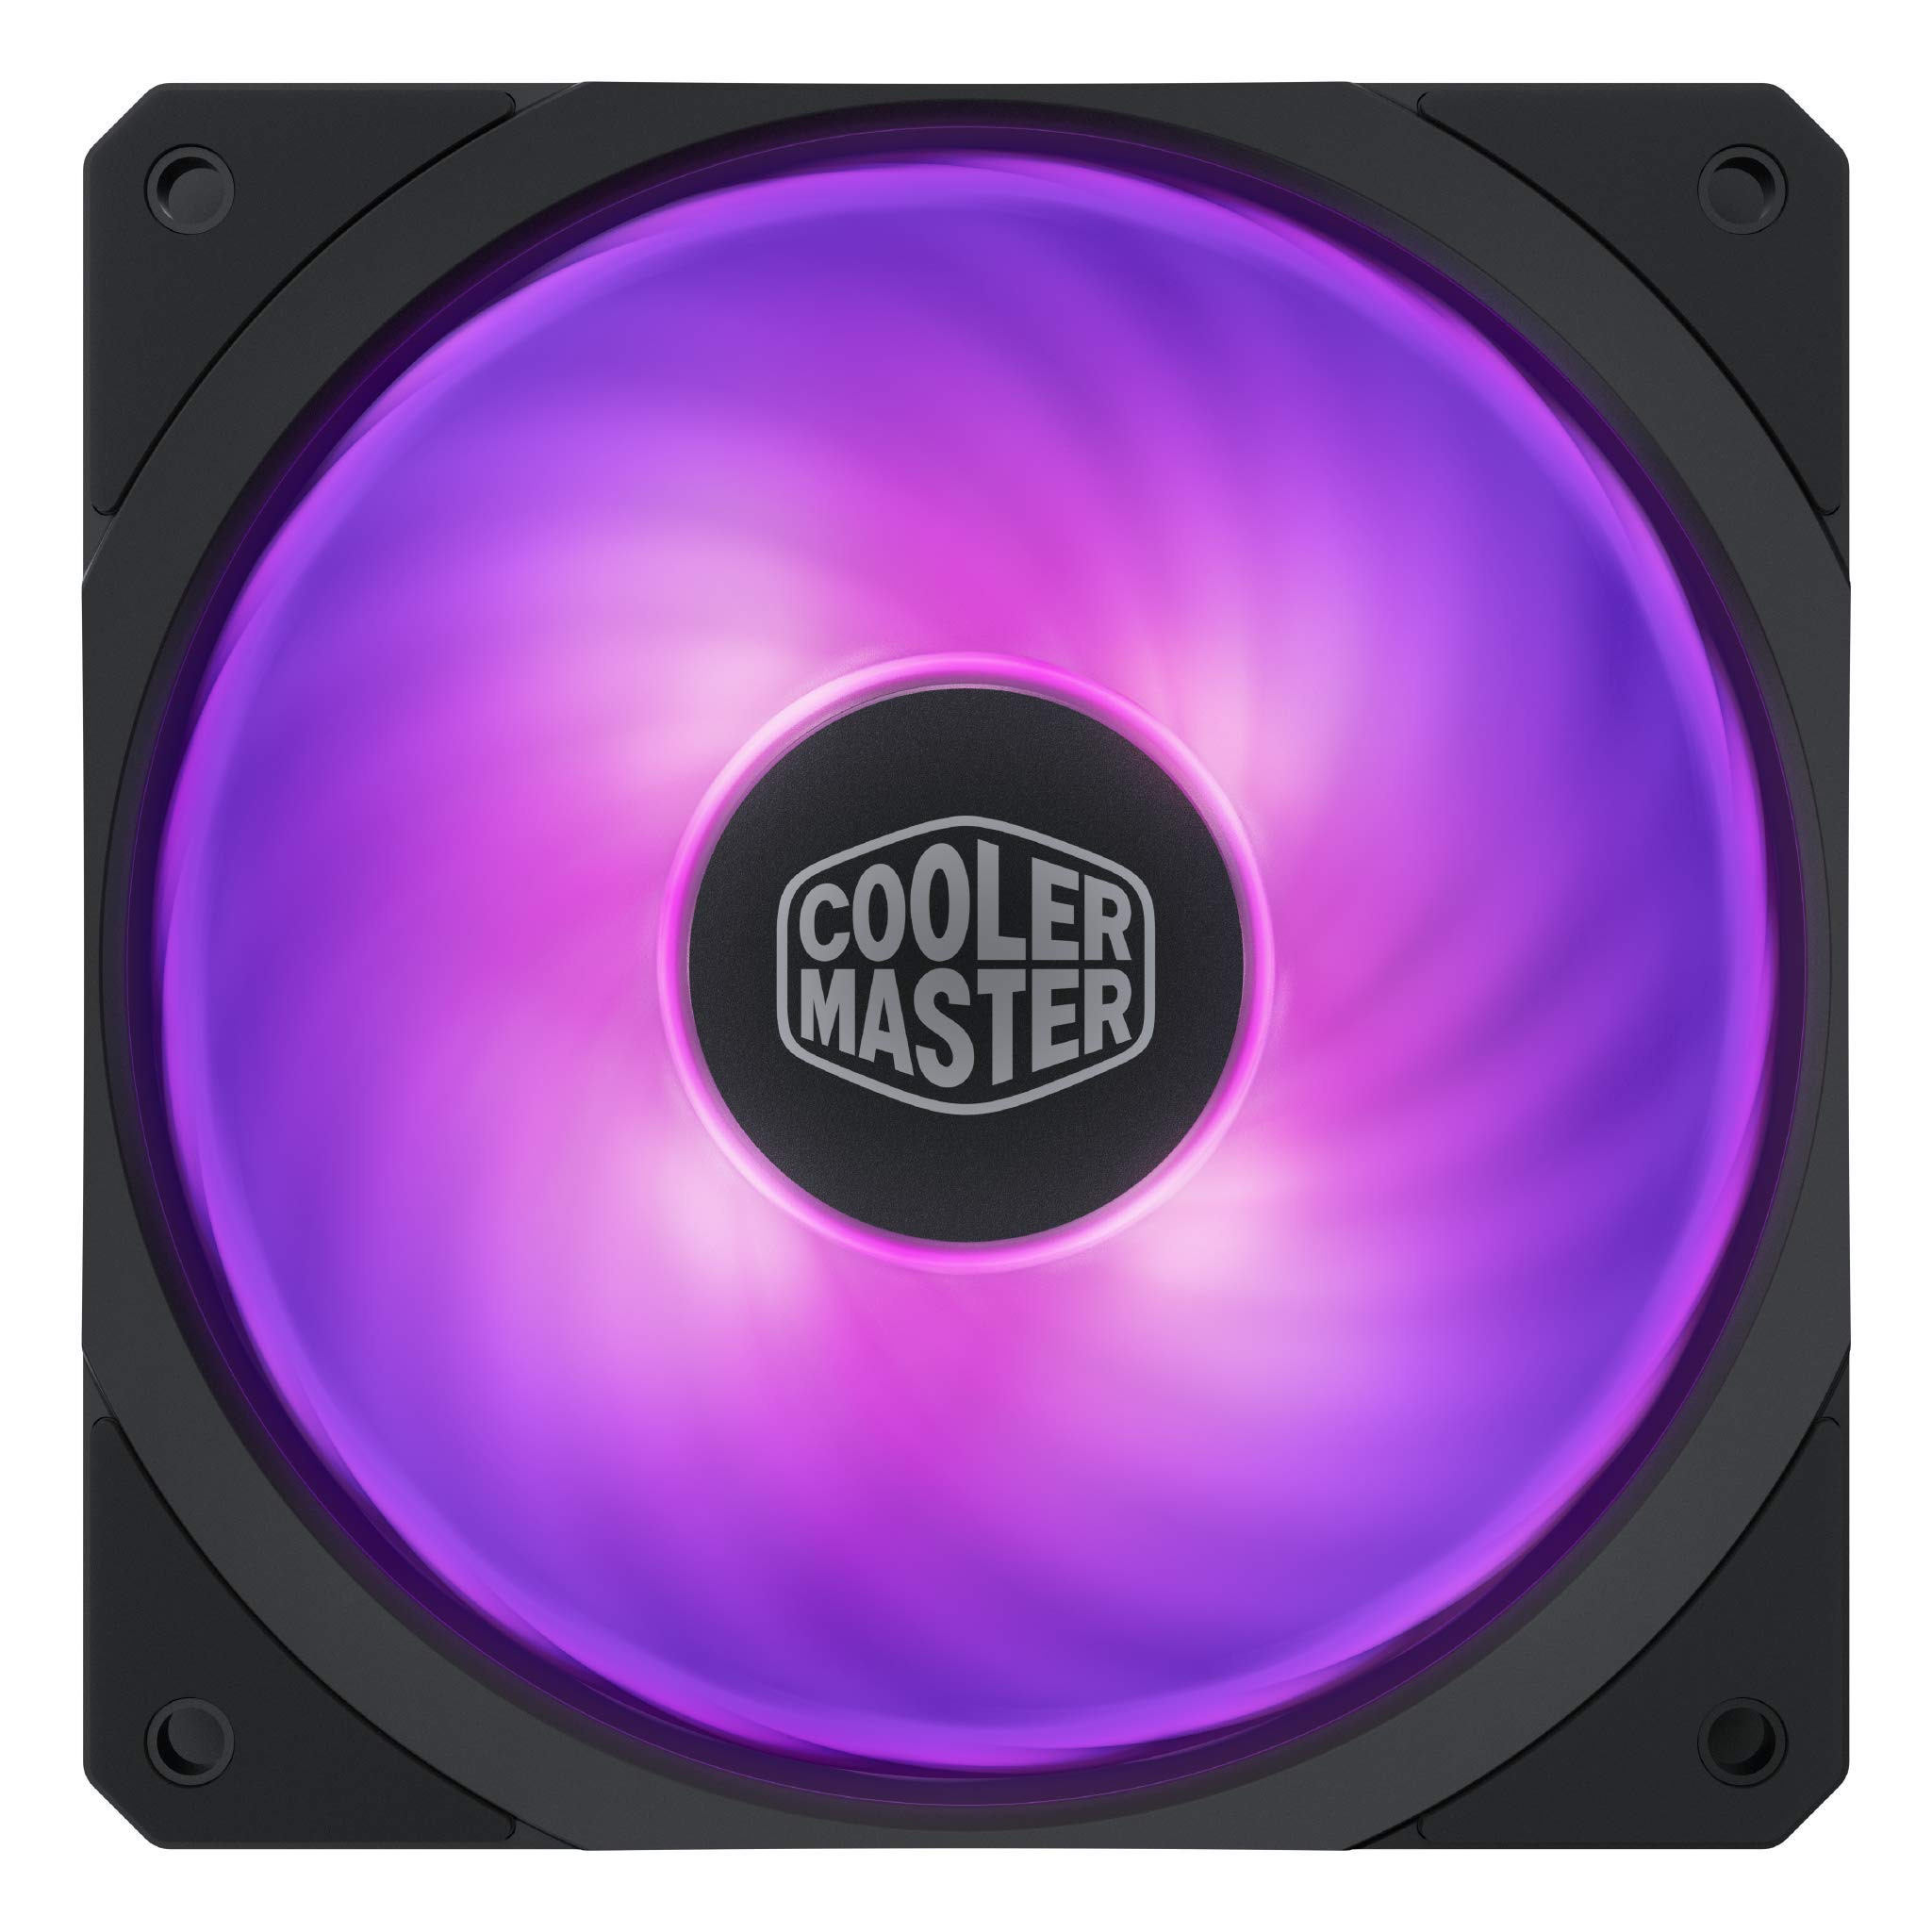 Cooler Master Masterfan Sf120r Rgb 120mm Square Frame Fan...